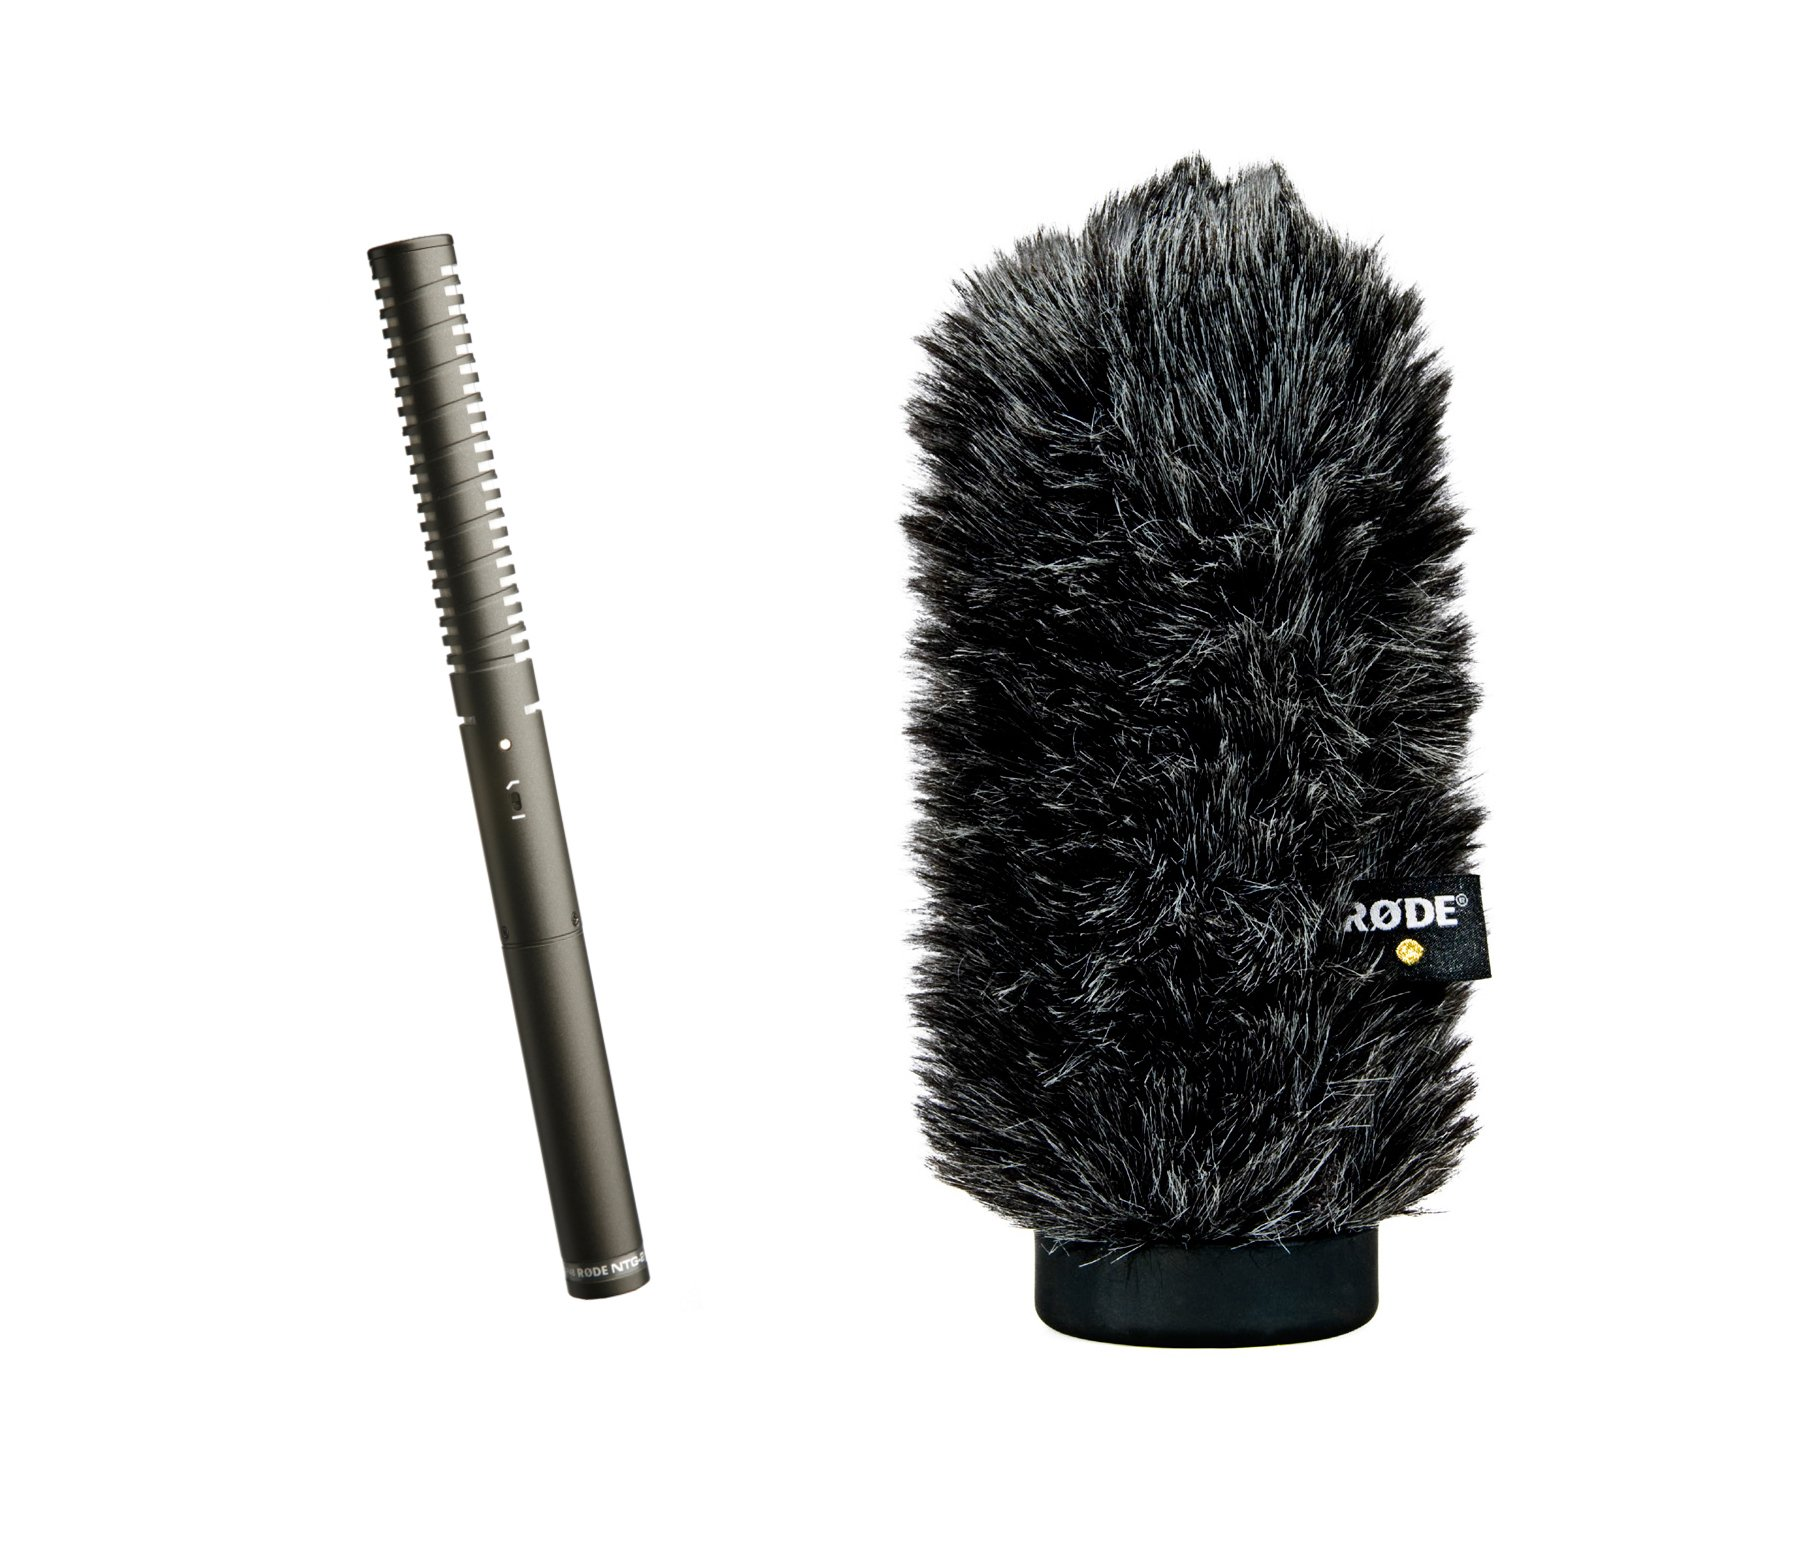 Rode NTG2/WS6 [PROMO] Condenser Shotgun Microphone with WS6 Windshield NTG2-PROMO